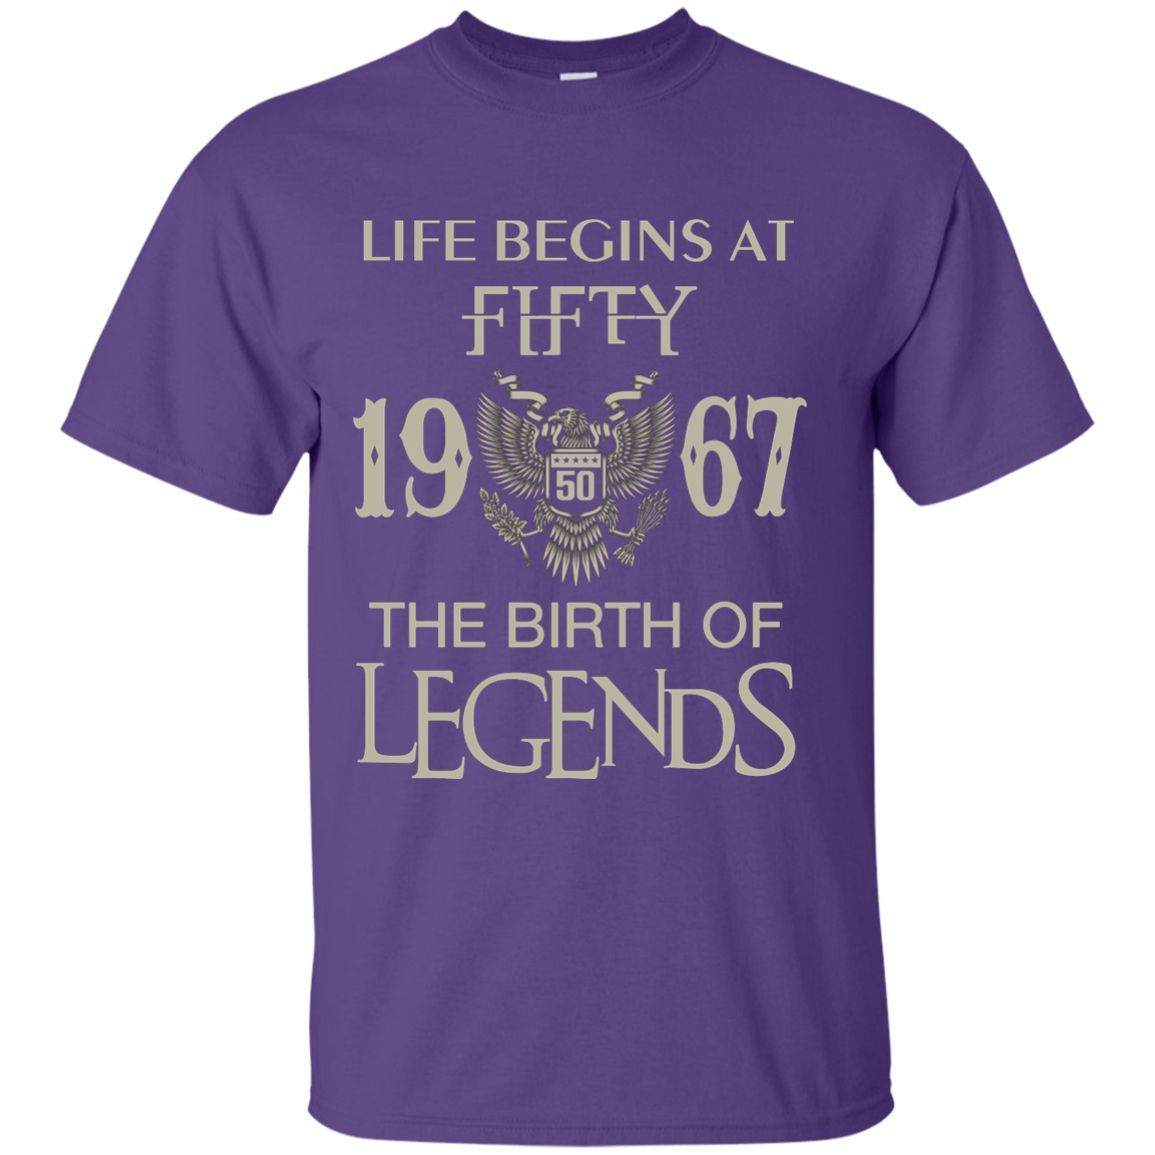 Life begins at Fifty - 1967 - The birth of legends Custom Ultra Cotton T-Shirt